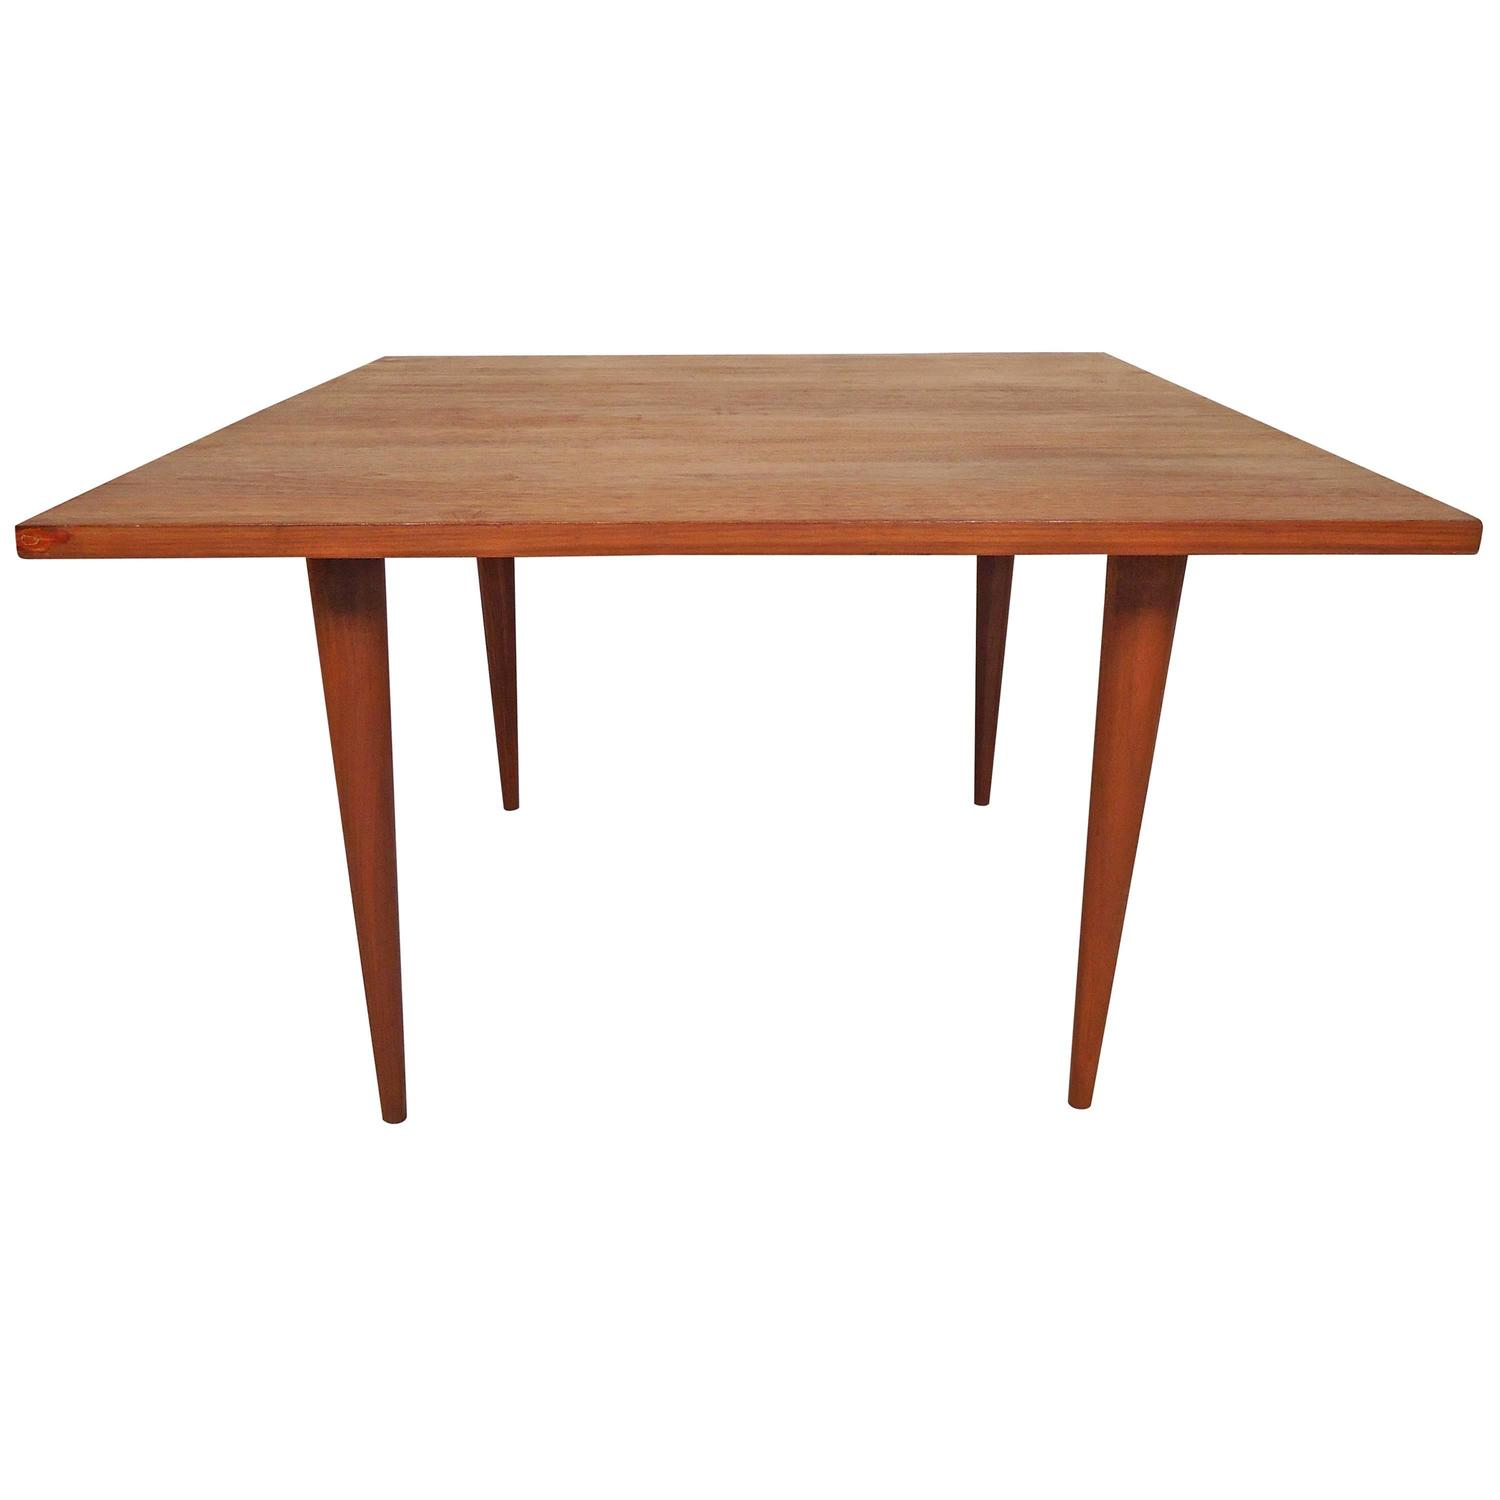 Mid-Century Modern Square Coffee Table In The Style Of